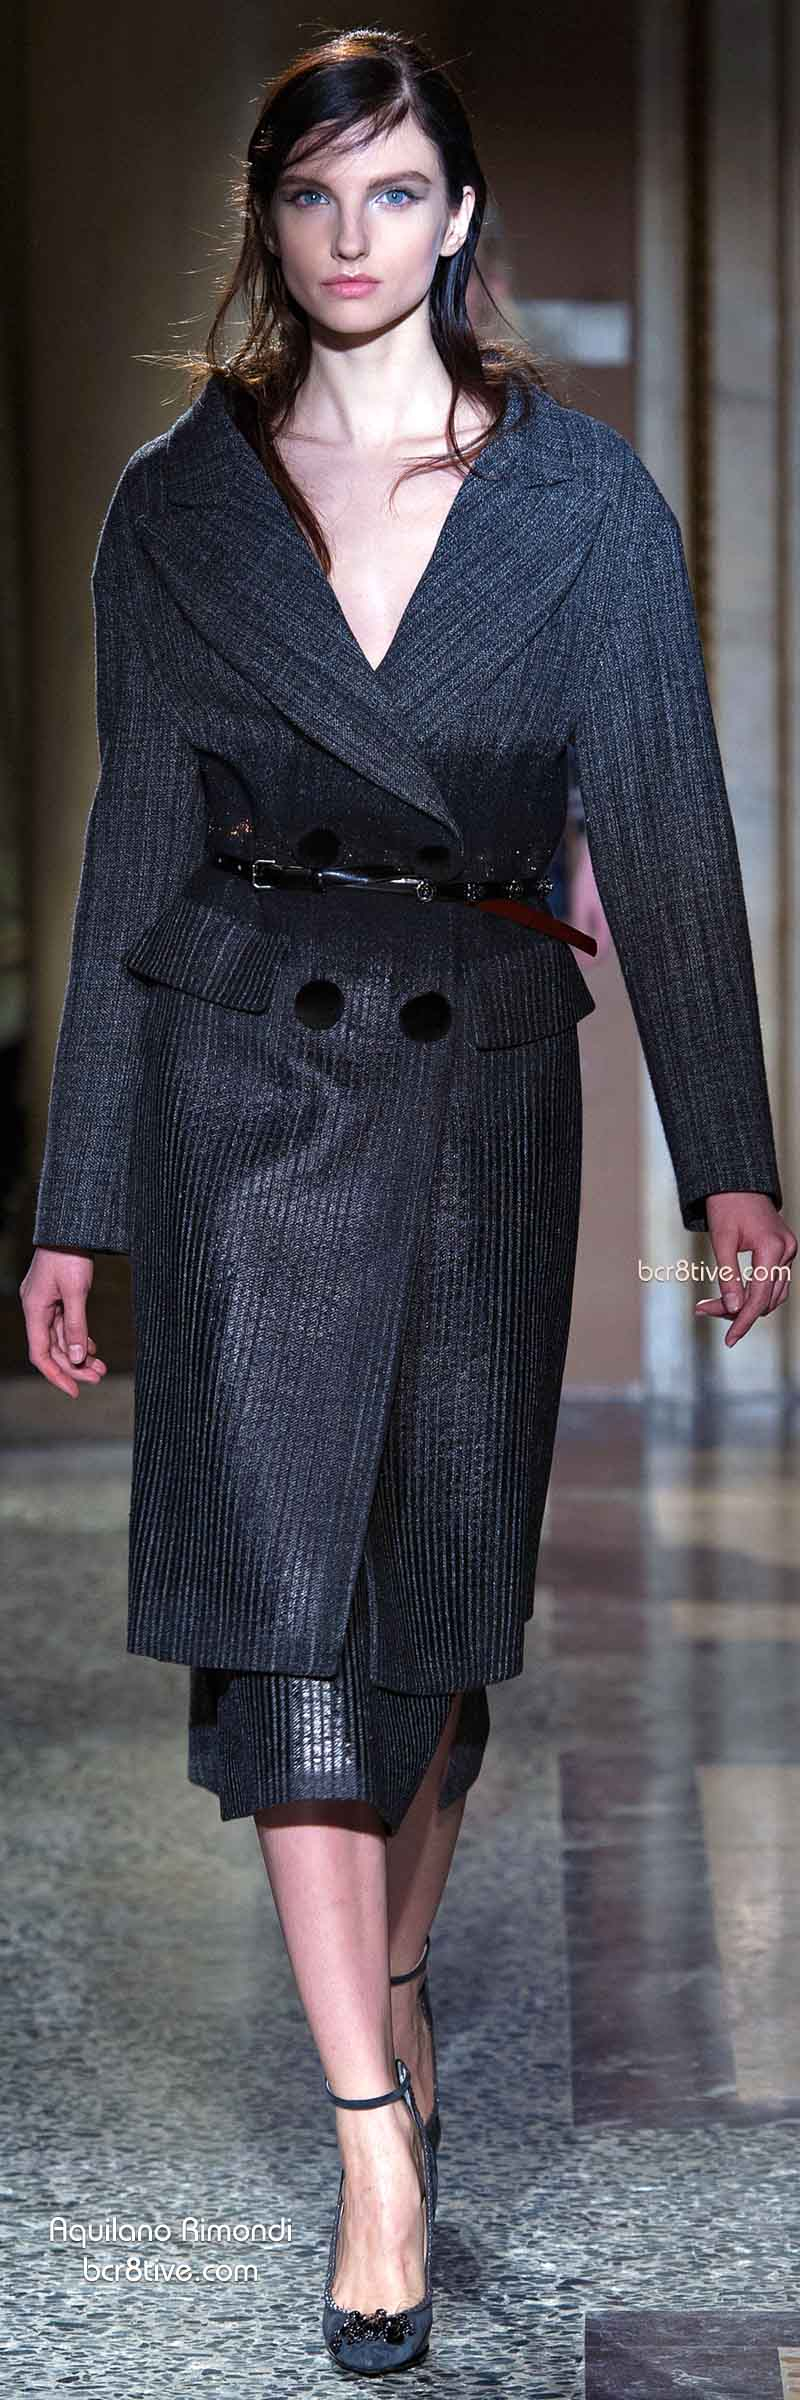 Fall 2014 Menswear Inspired Fashion - Aquilano Rimondi